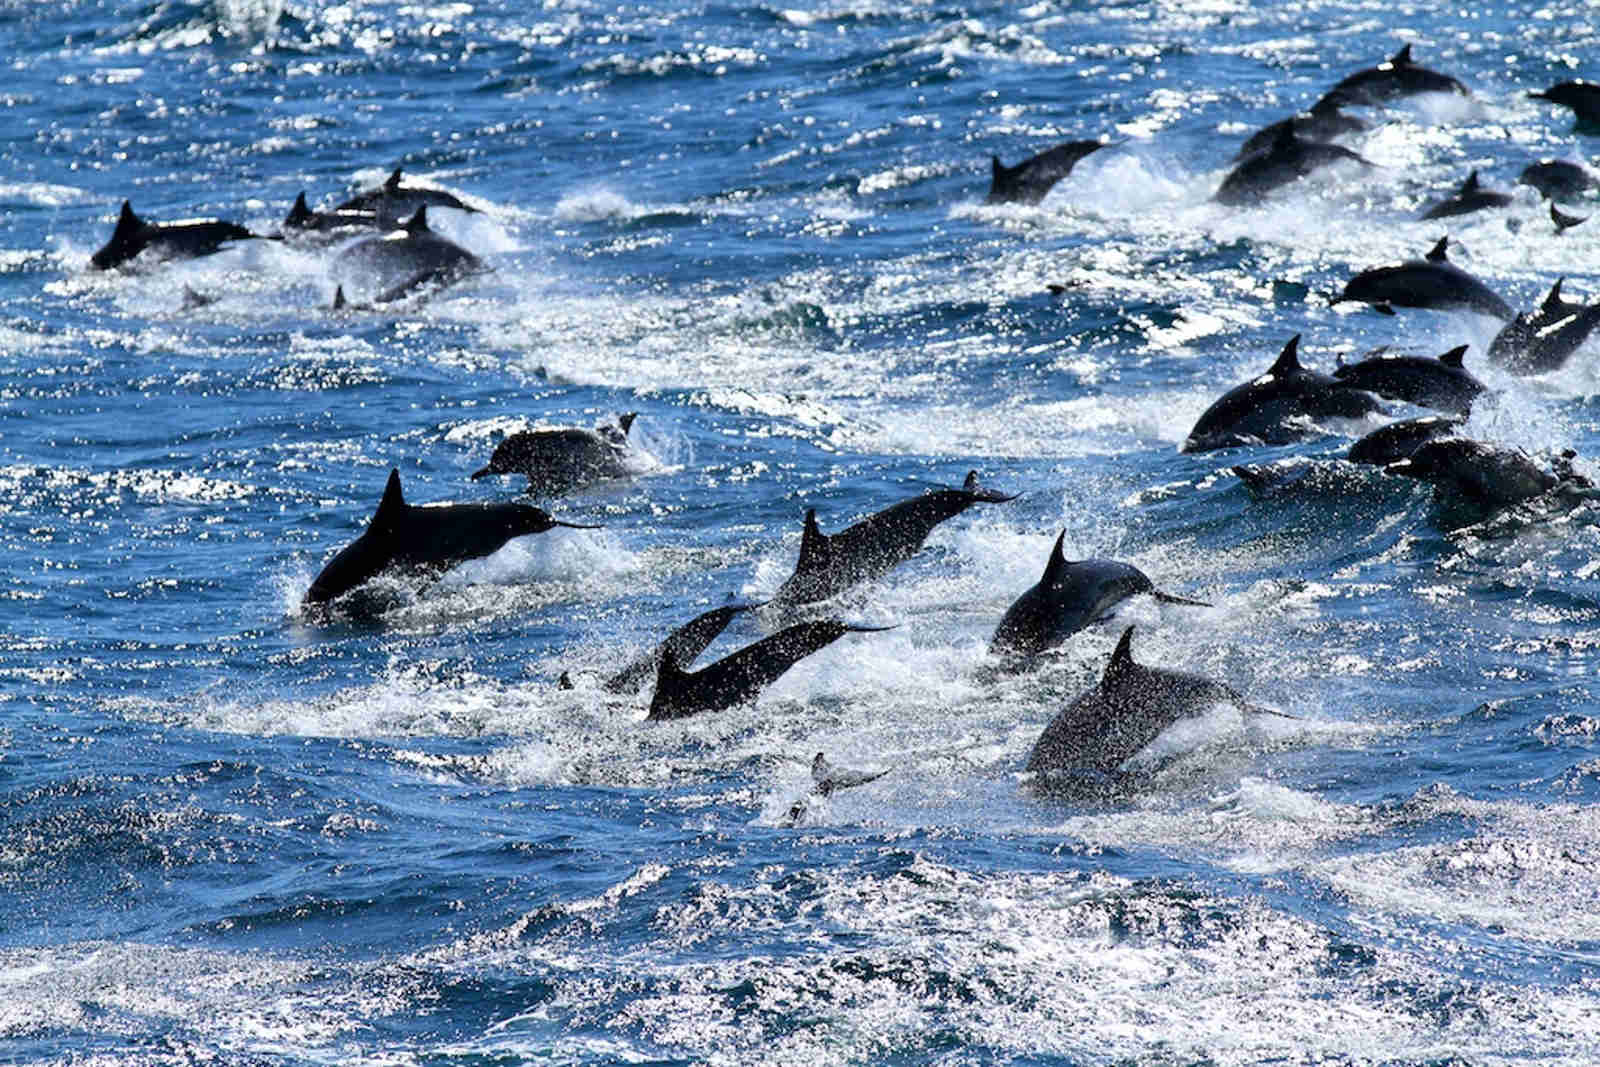 This is How We Should Experience Dolphins and Whales (VIDEO)